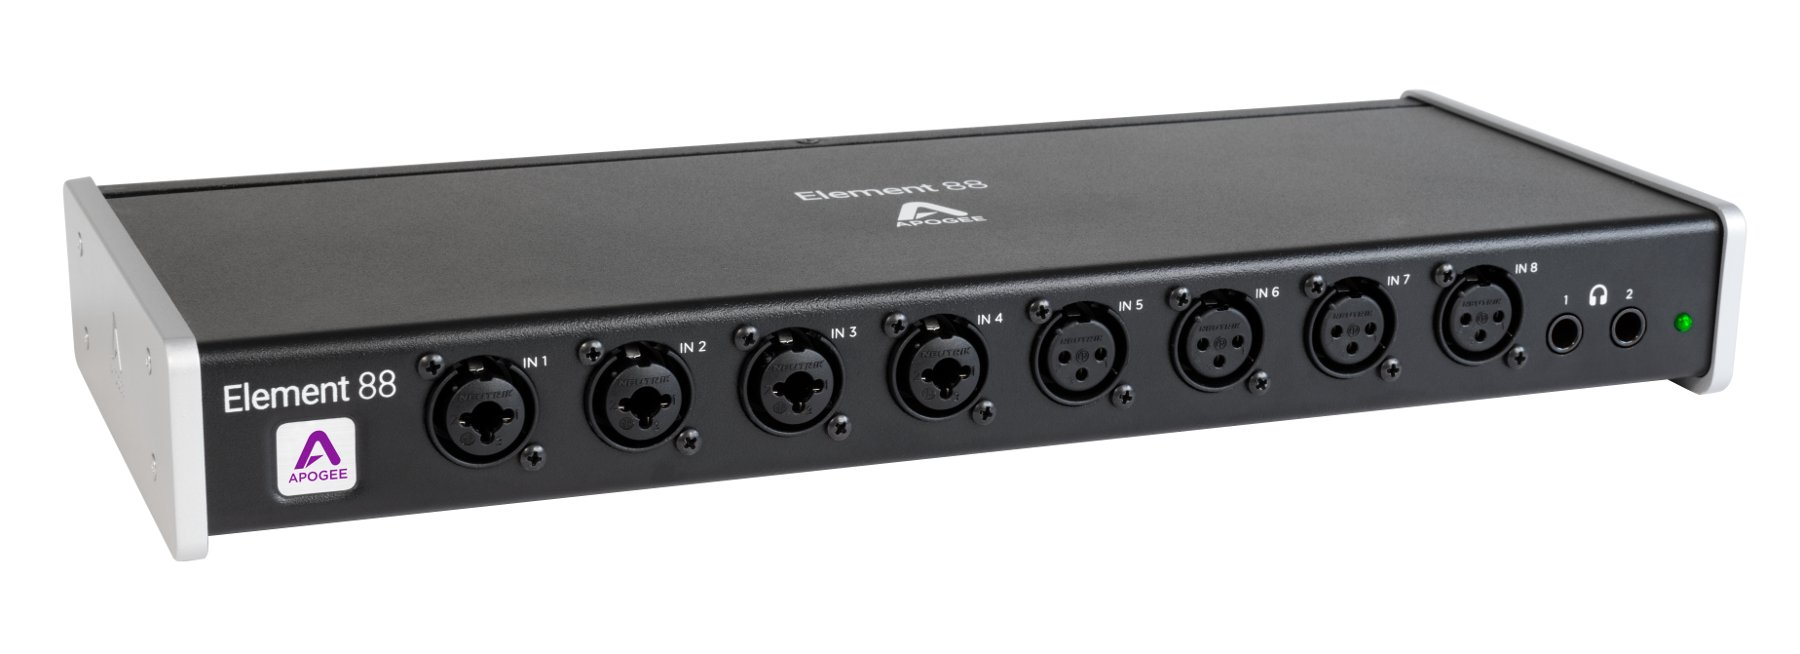 Apogee Element 88 16 In/16 Out Thunderbolt Audio I/O Box for Mac ELEMENT-88